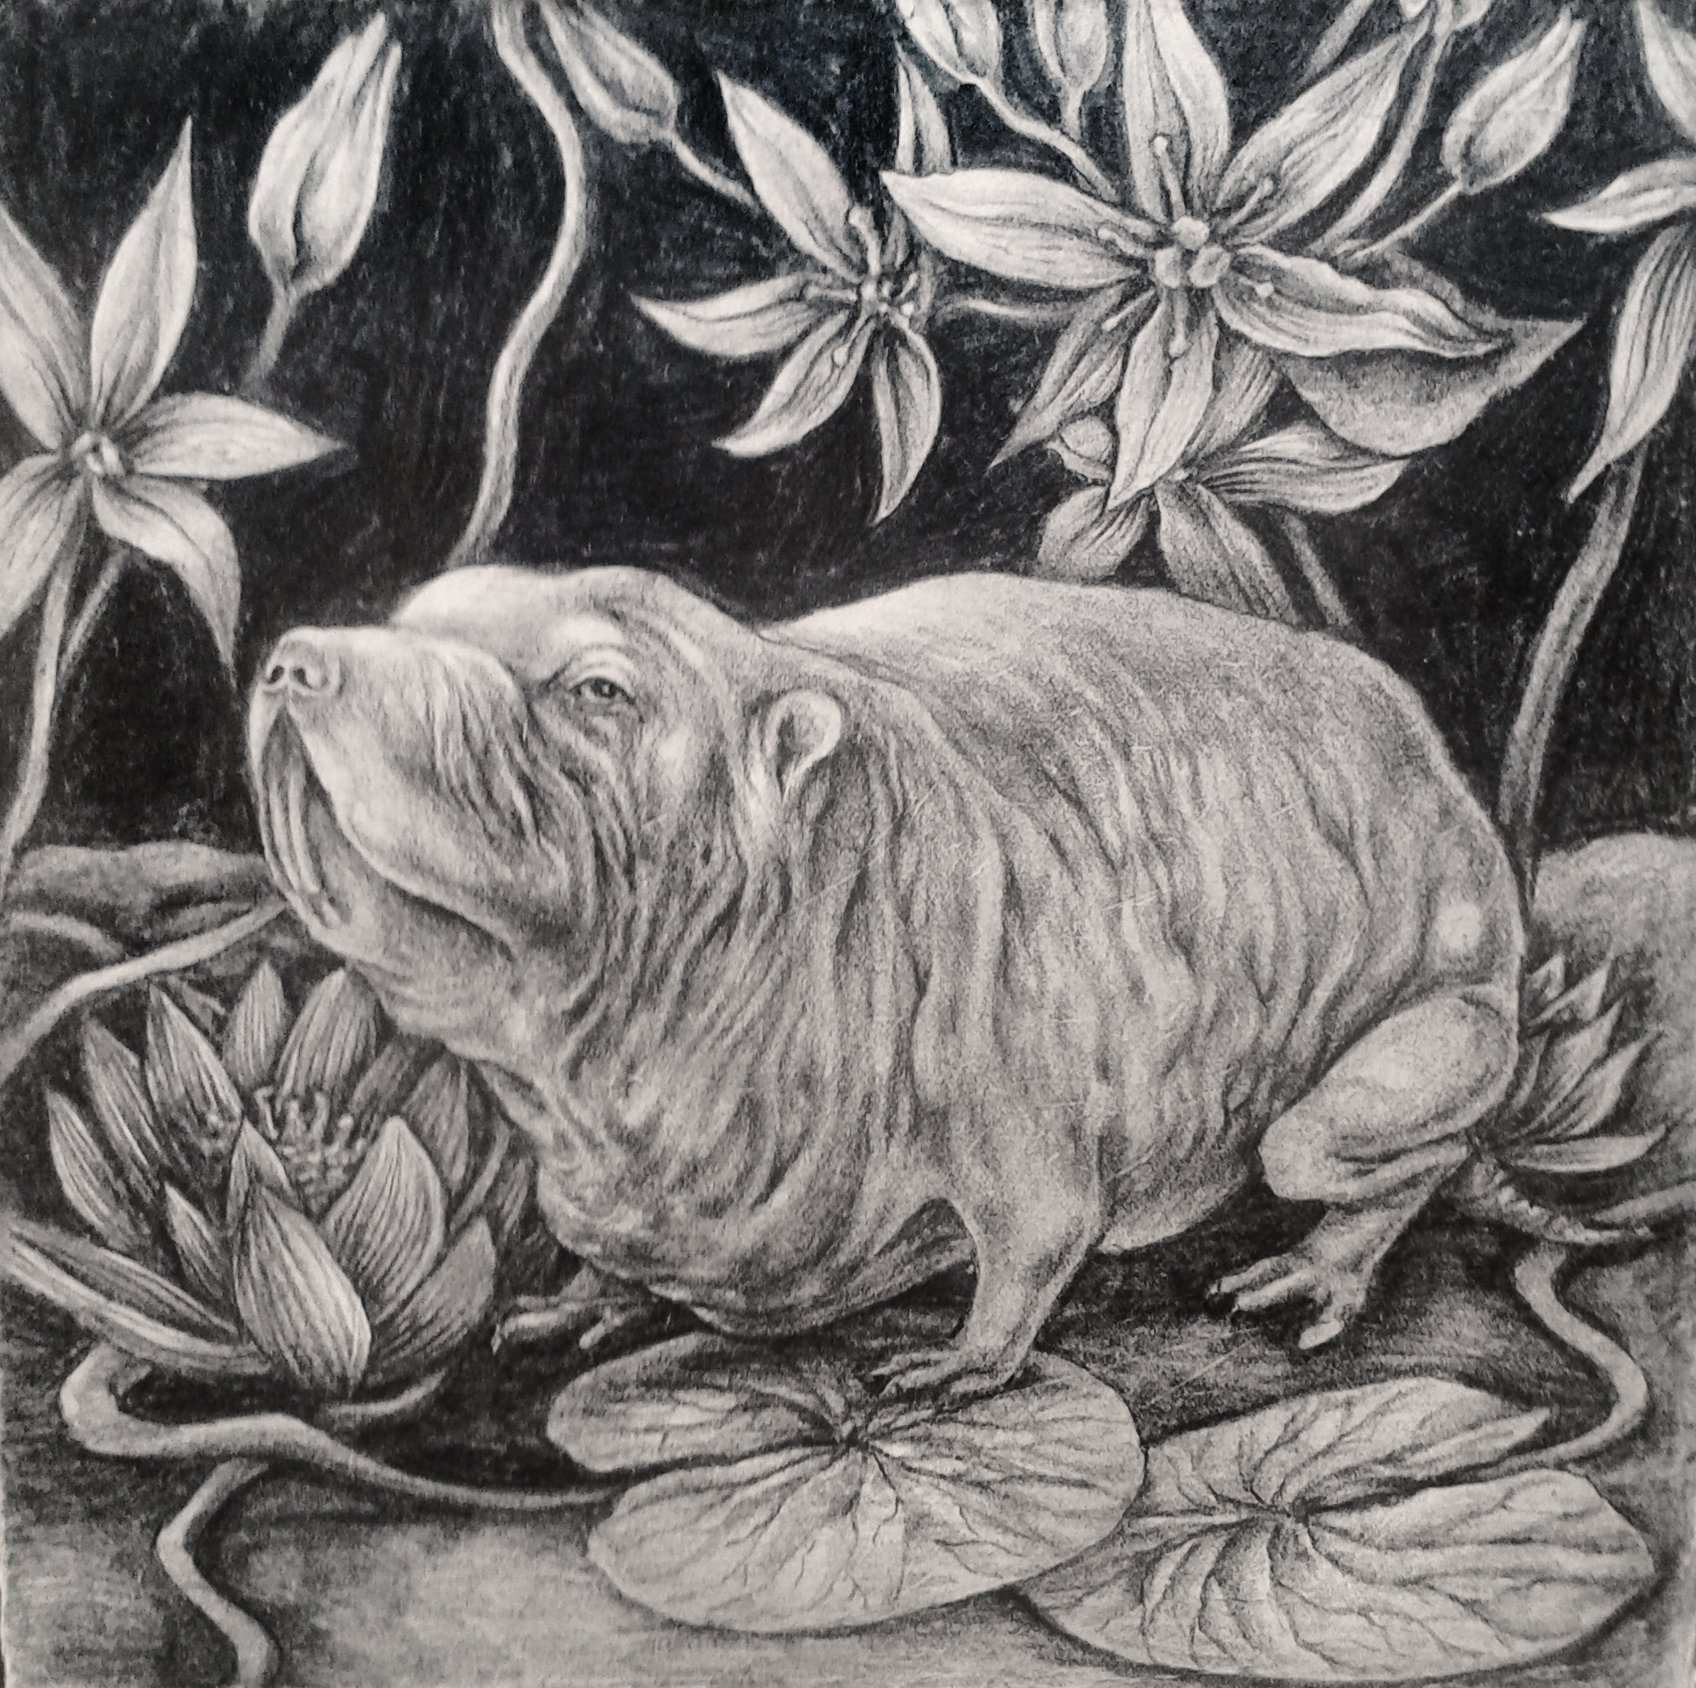 Naked rat and water lilies 20x20cm